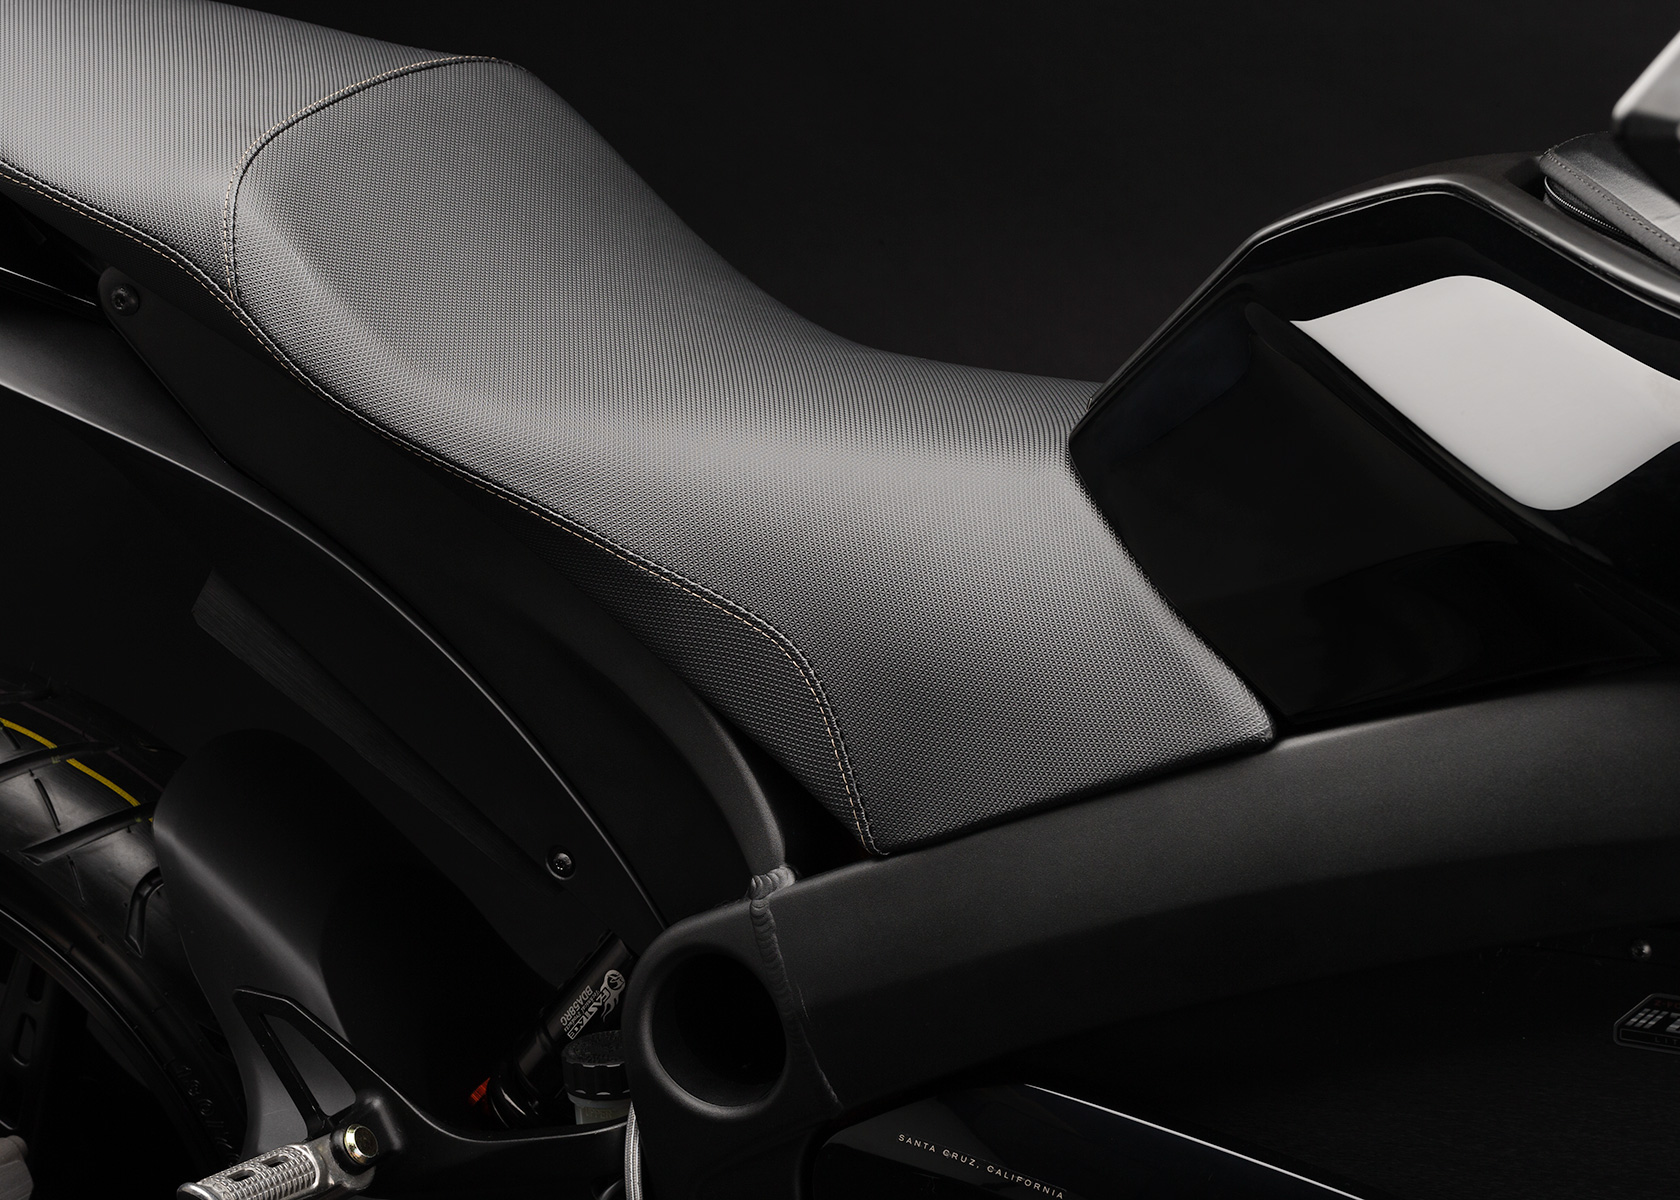 2013 Zero S Electric Motorcycle: Seat